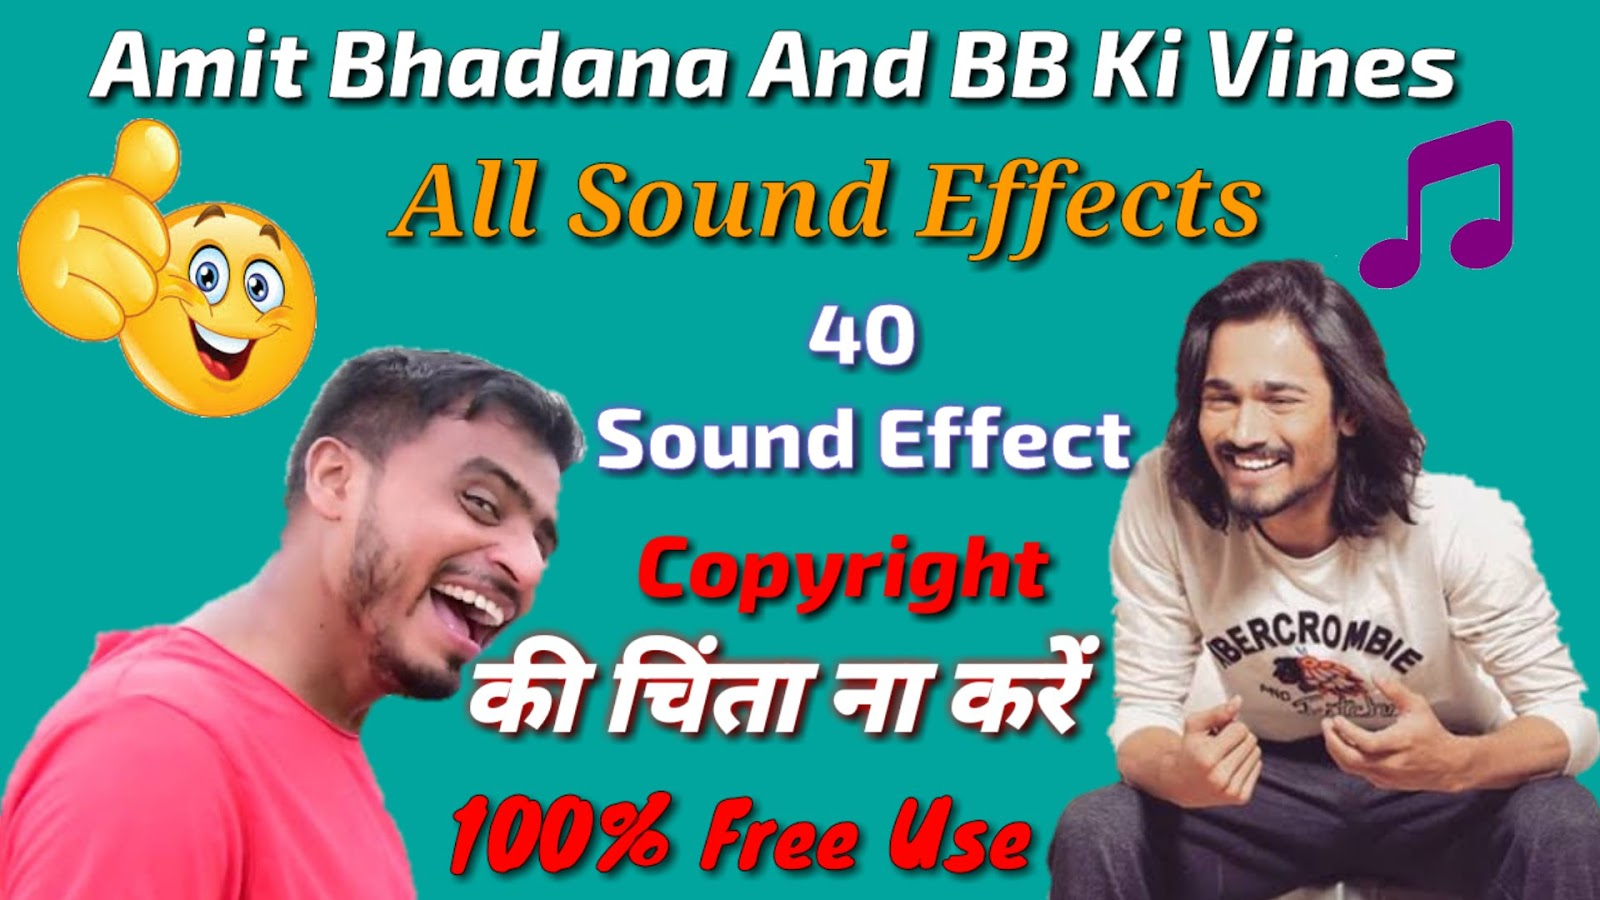 Amit Bhadana And BB Ki Vines All Sound Effects | 40 Sound